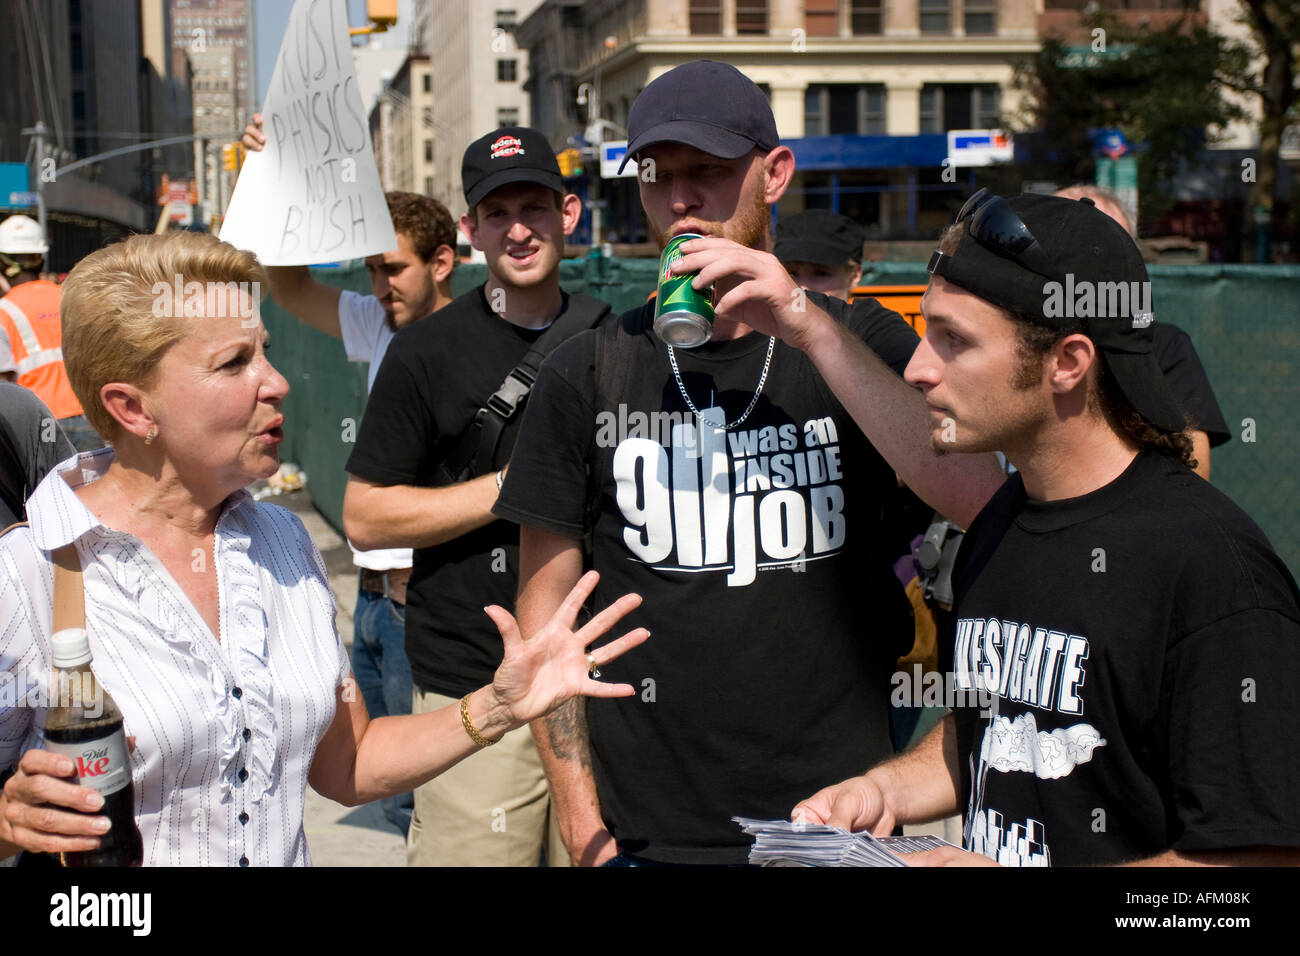 9/11 conspiracy theorists (center and right) argue with a passerby (left) about what really happened to the World - Stock Image